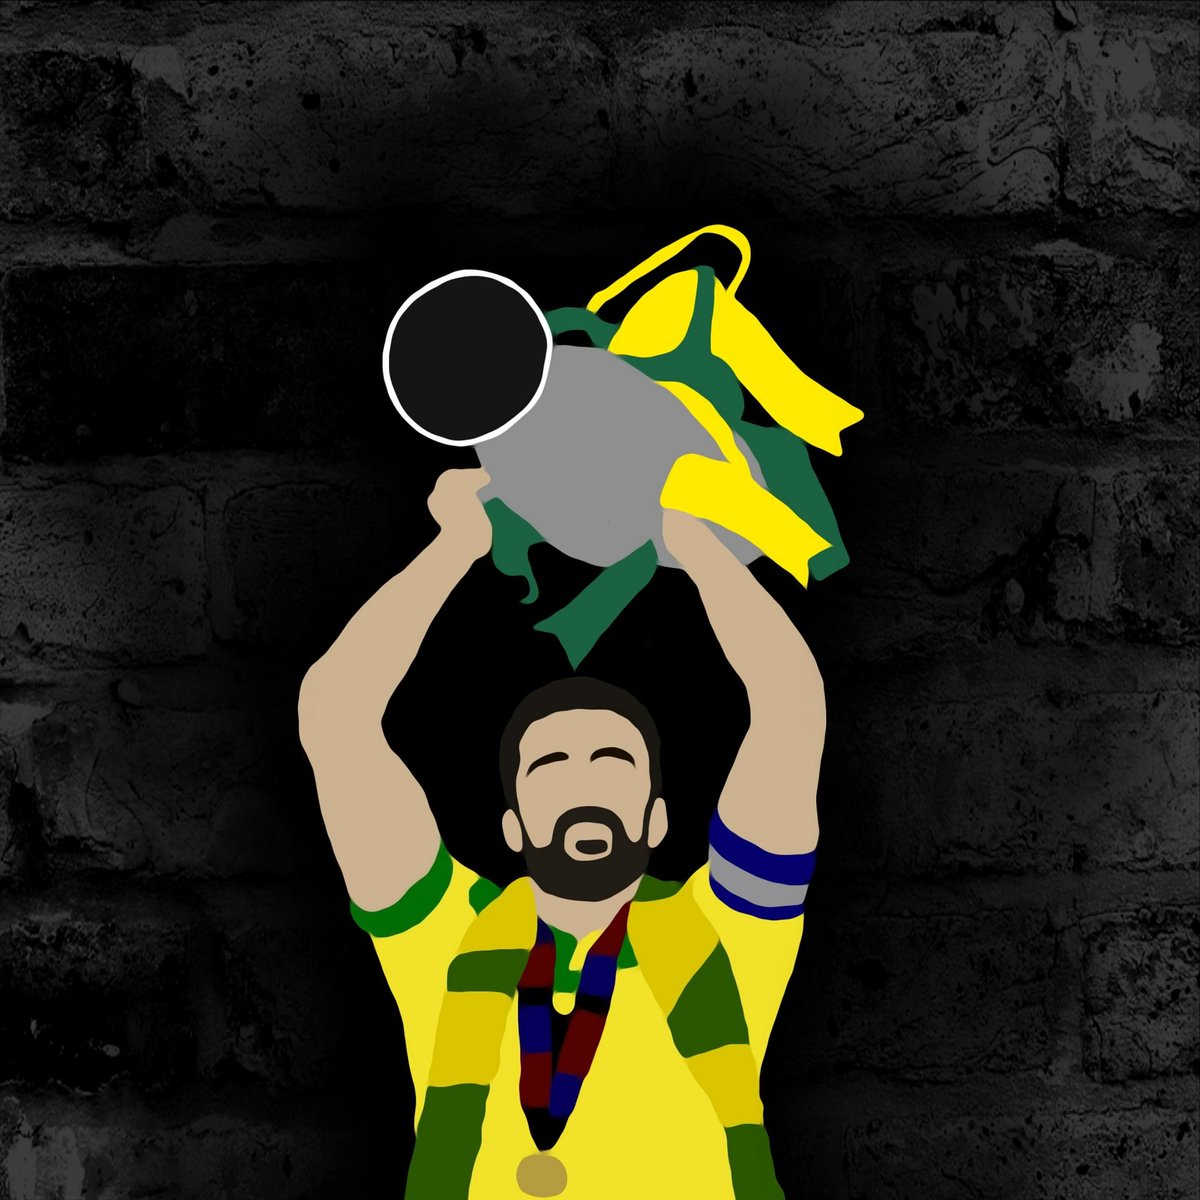 NCFC_EDITS's photo on russell martin